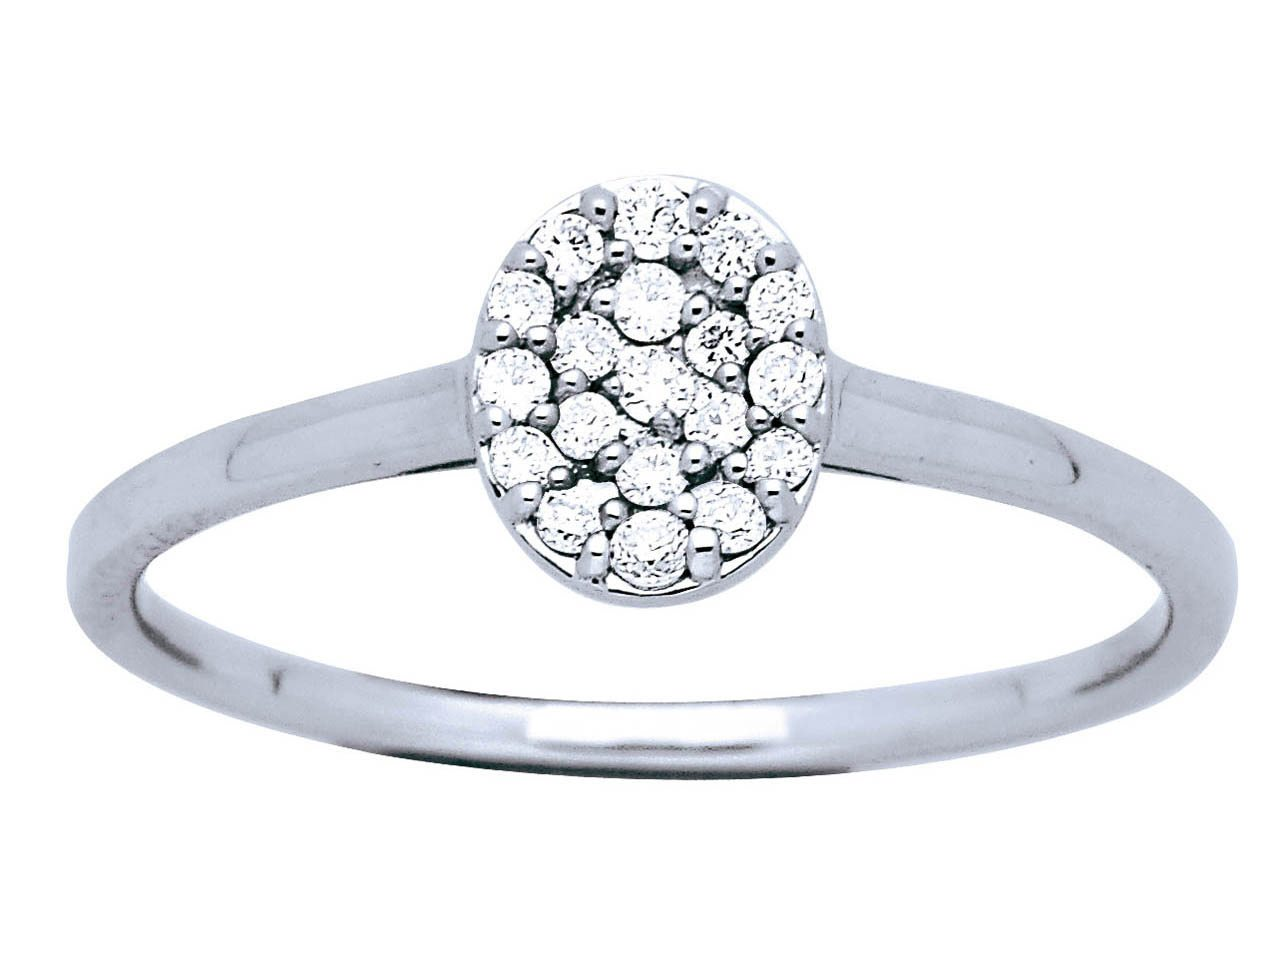 Bague ovale Or gris, pavage diamants 0,19 ct